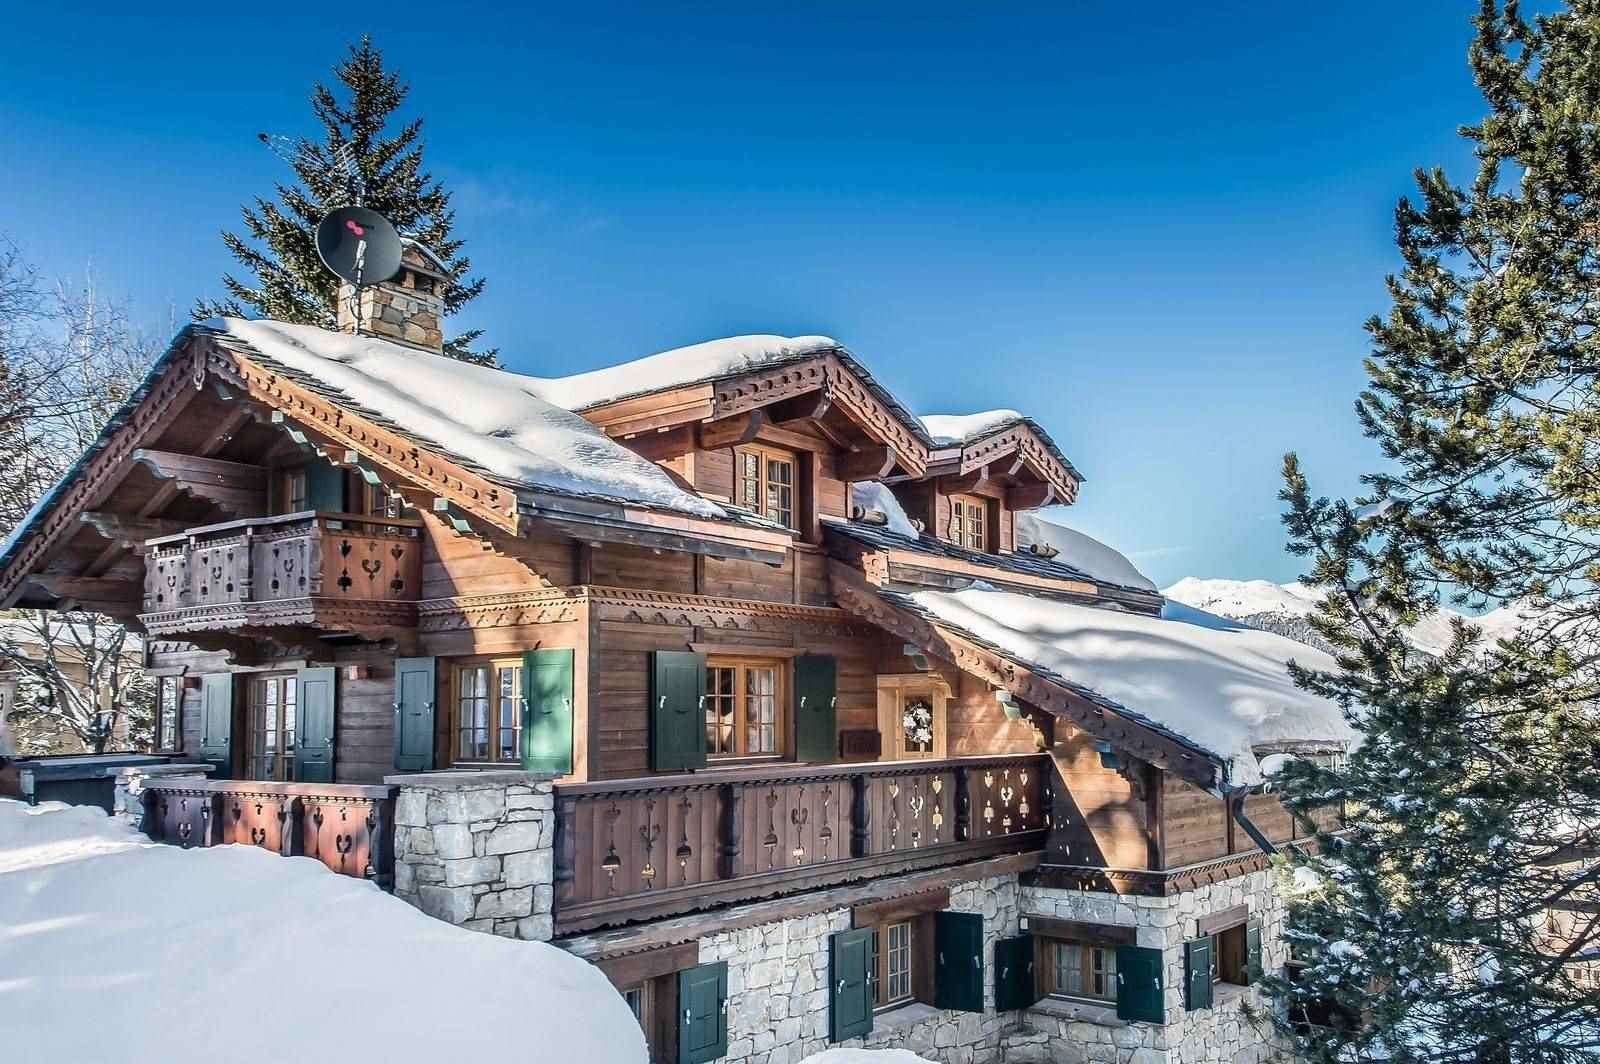 Accommodation in Courchevel Moriond